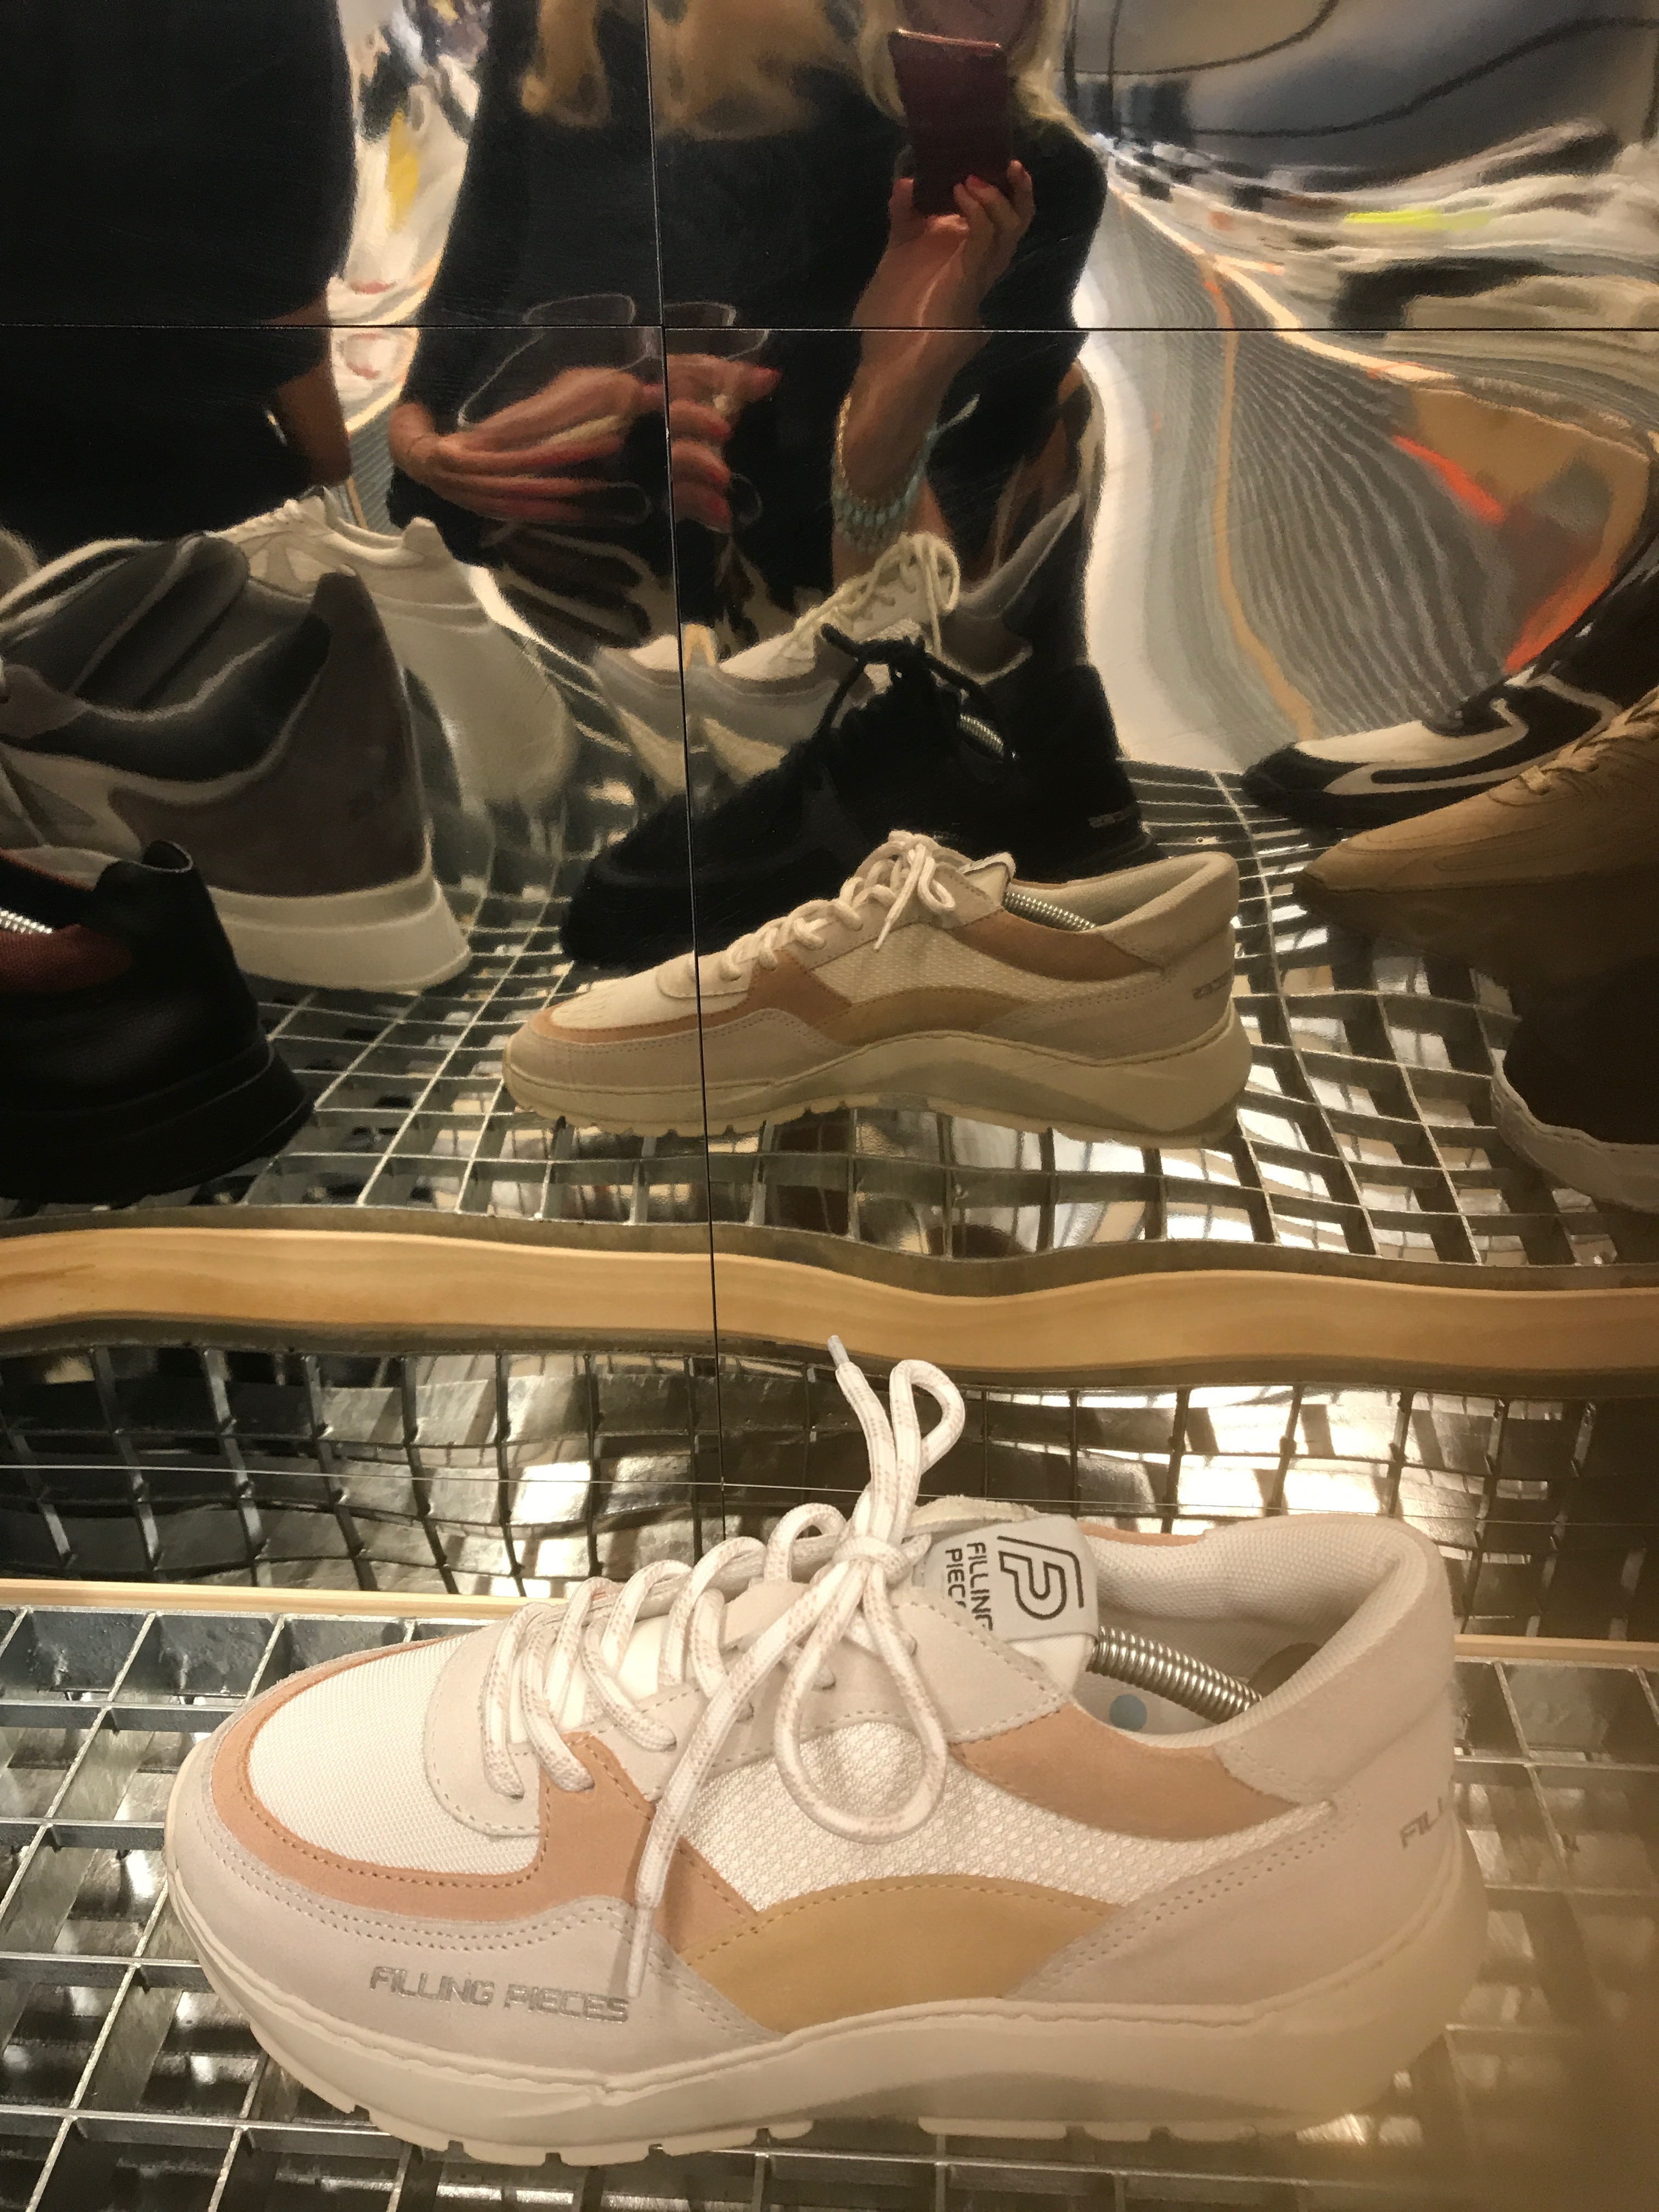 Filling pieces 1